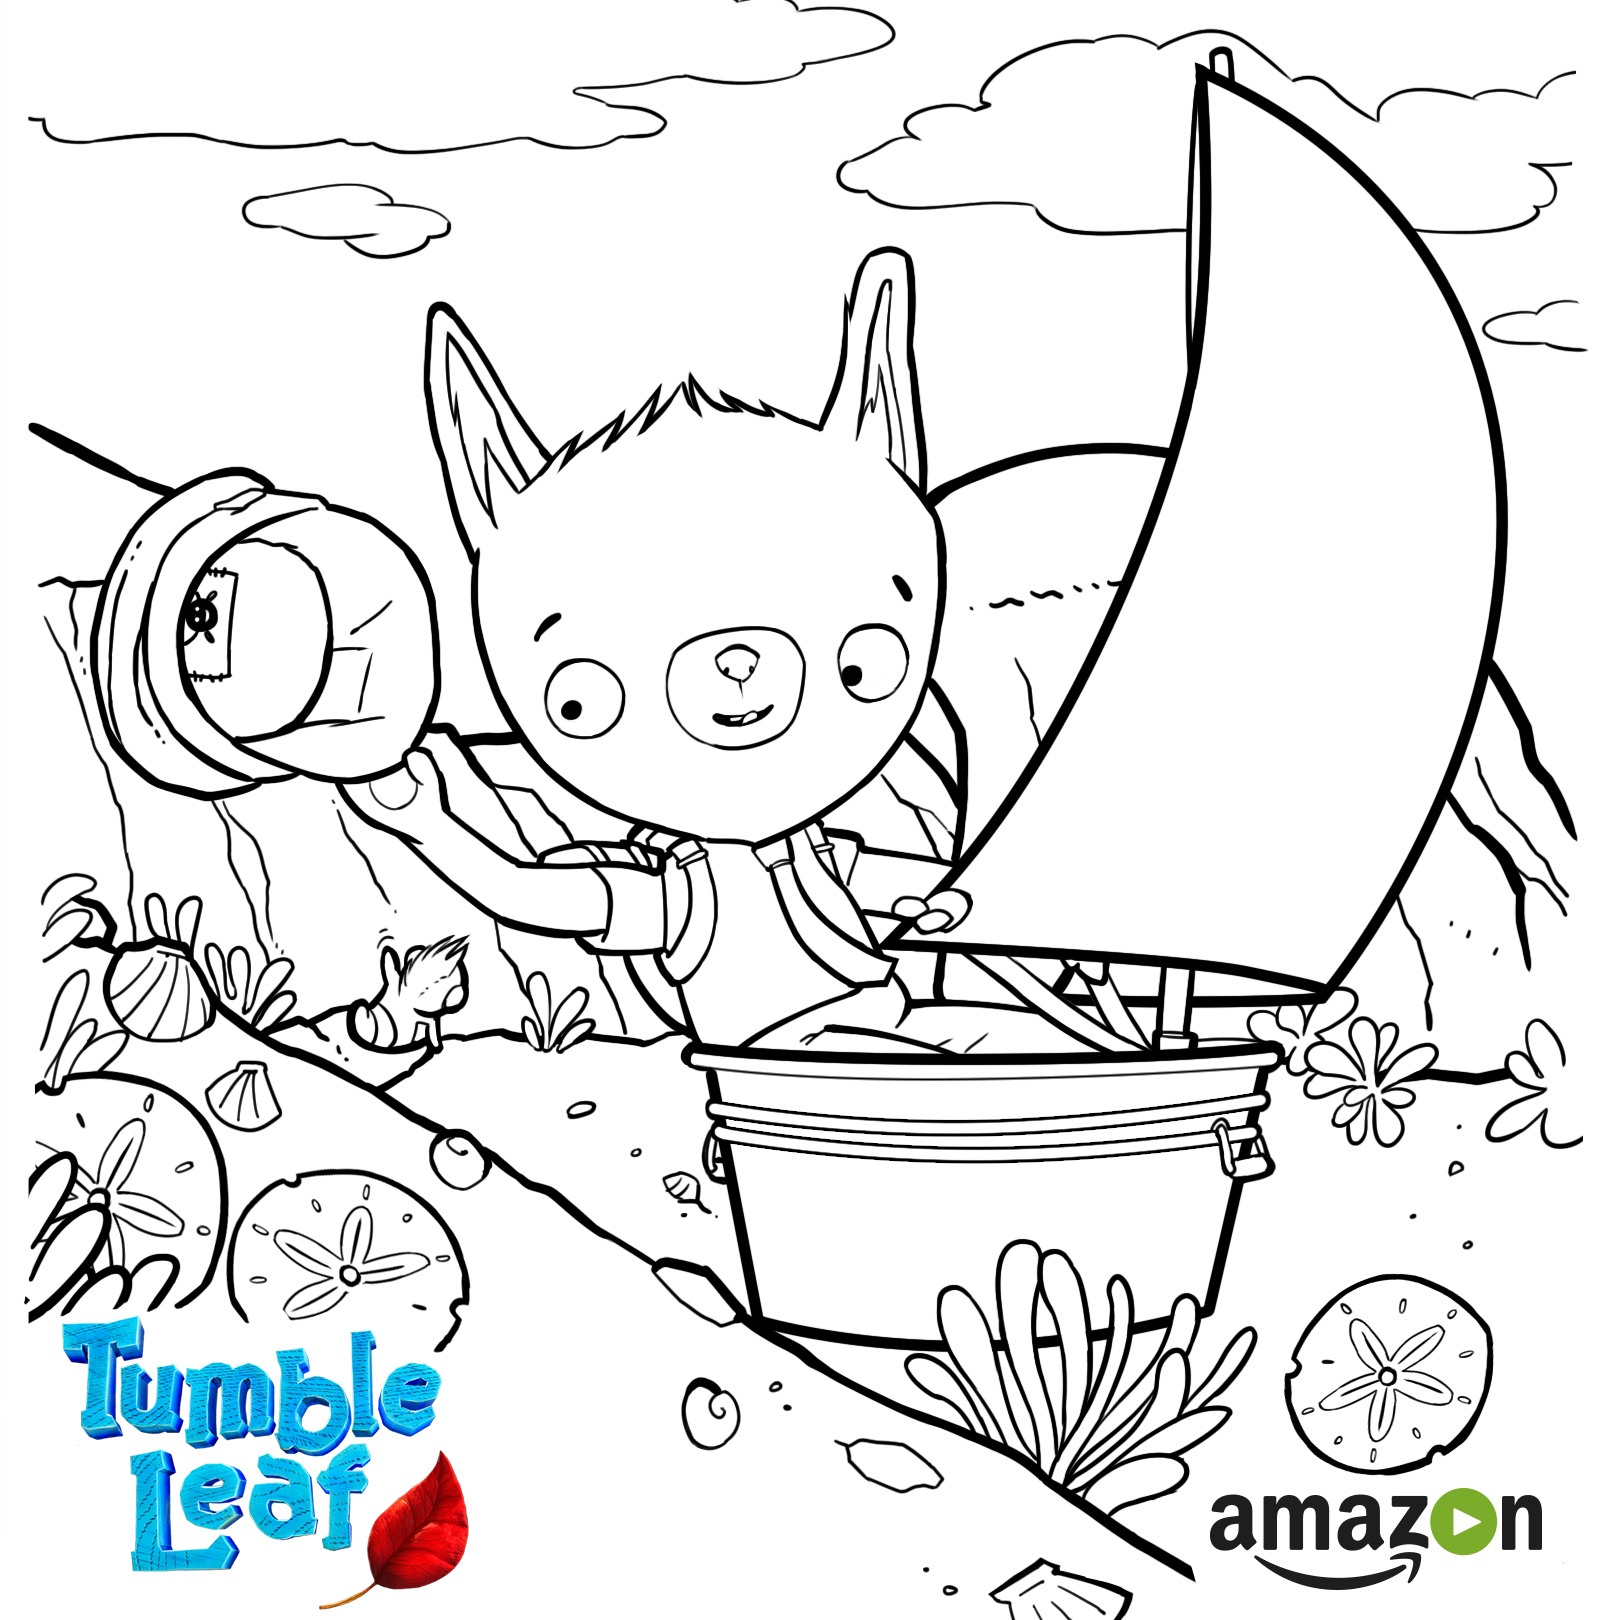 tumble leaf coloring pages Tumble Leaf Coloring Page   tumble leaf coloring pages